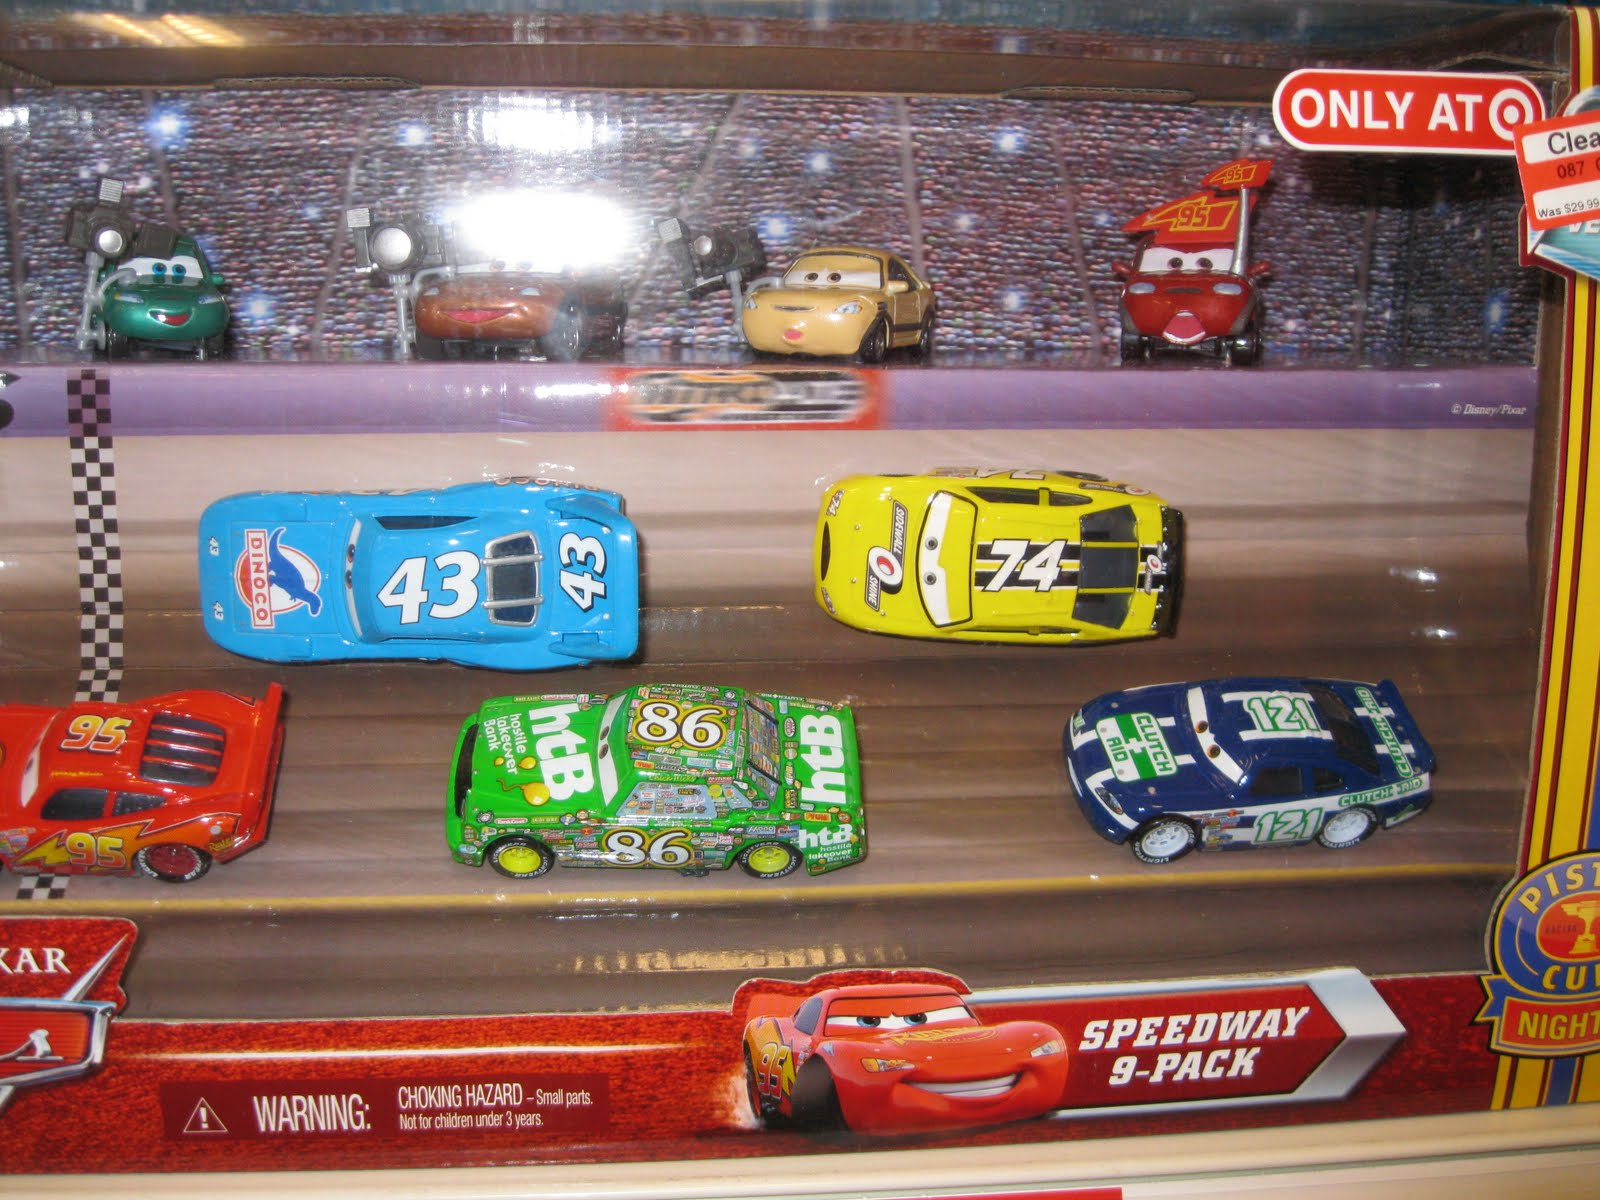 Target Toy Clearance Alert: Disney Cars, Nerf And More 30